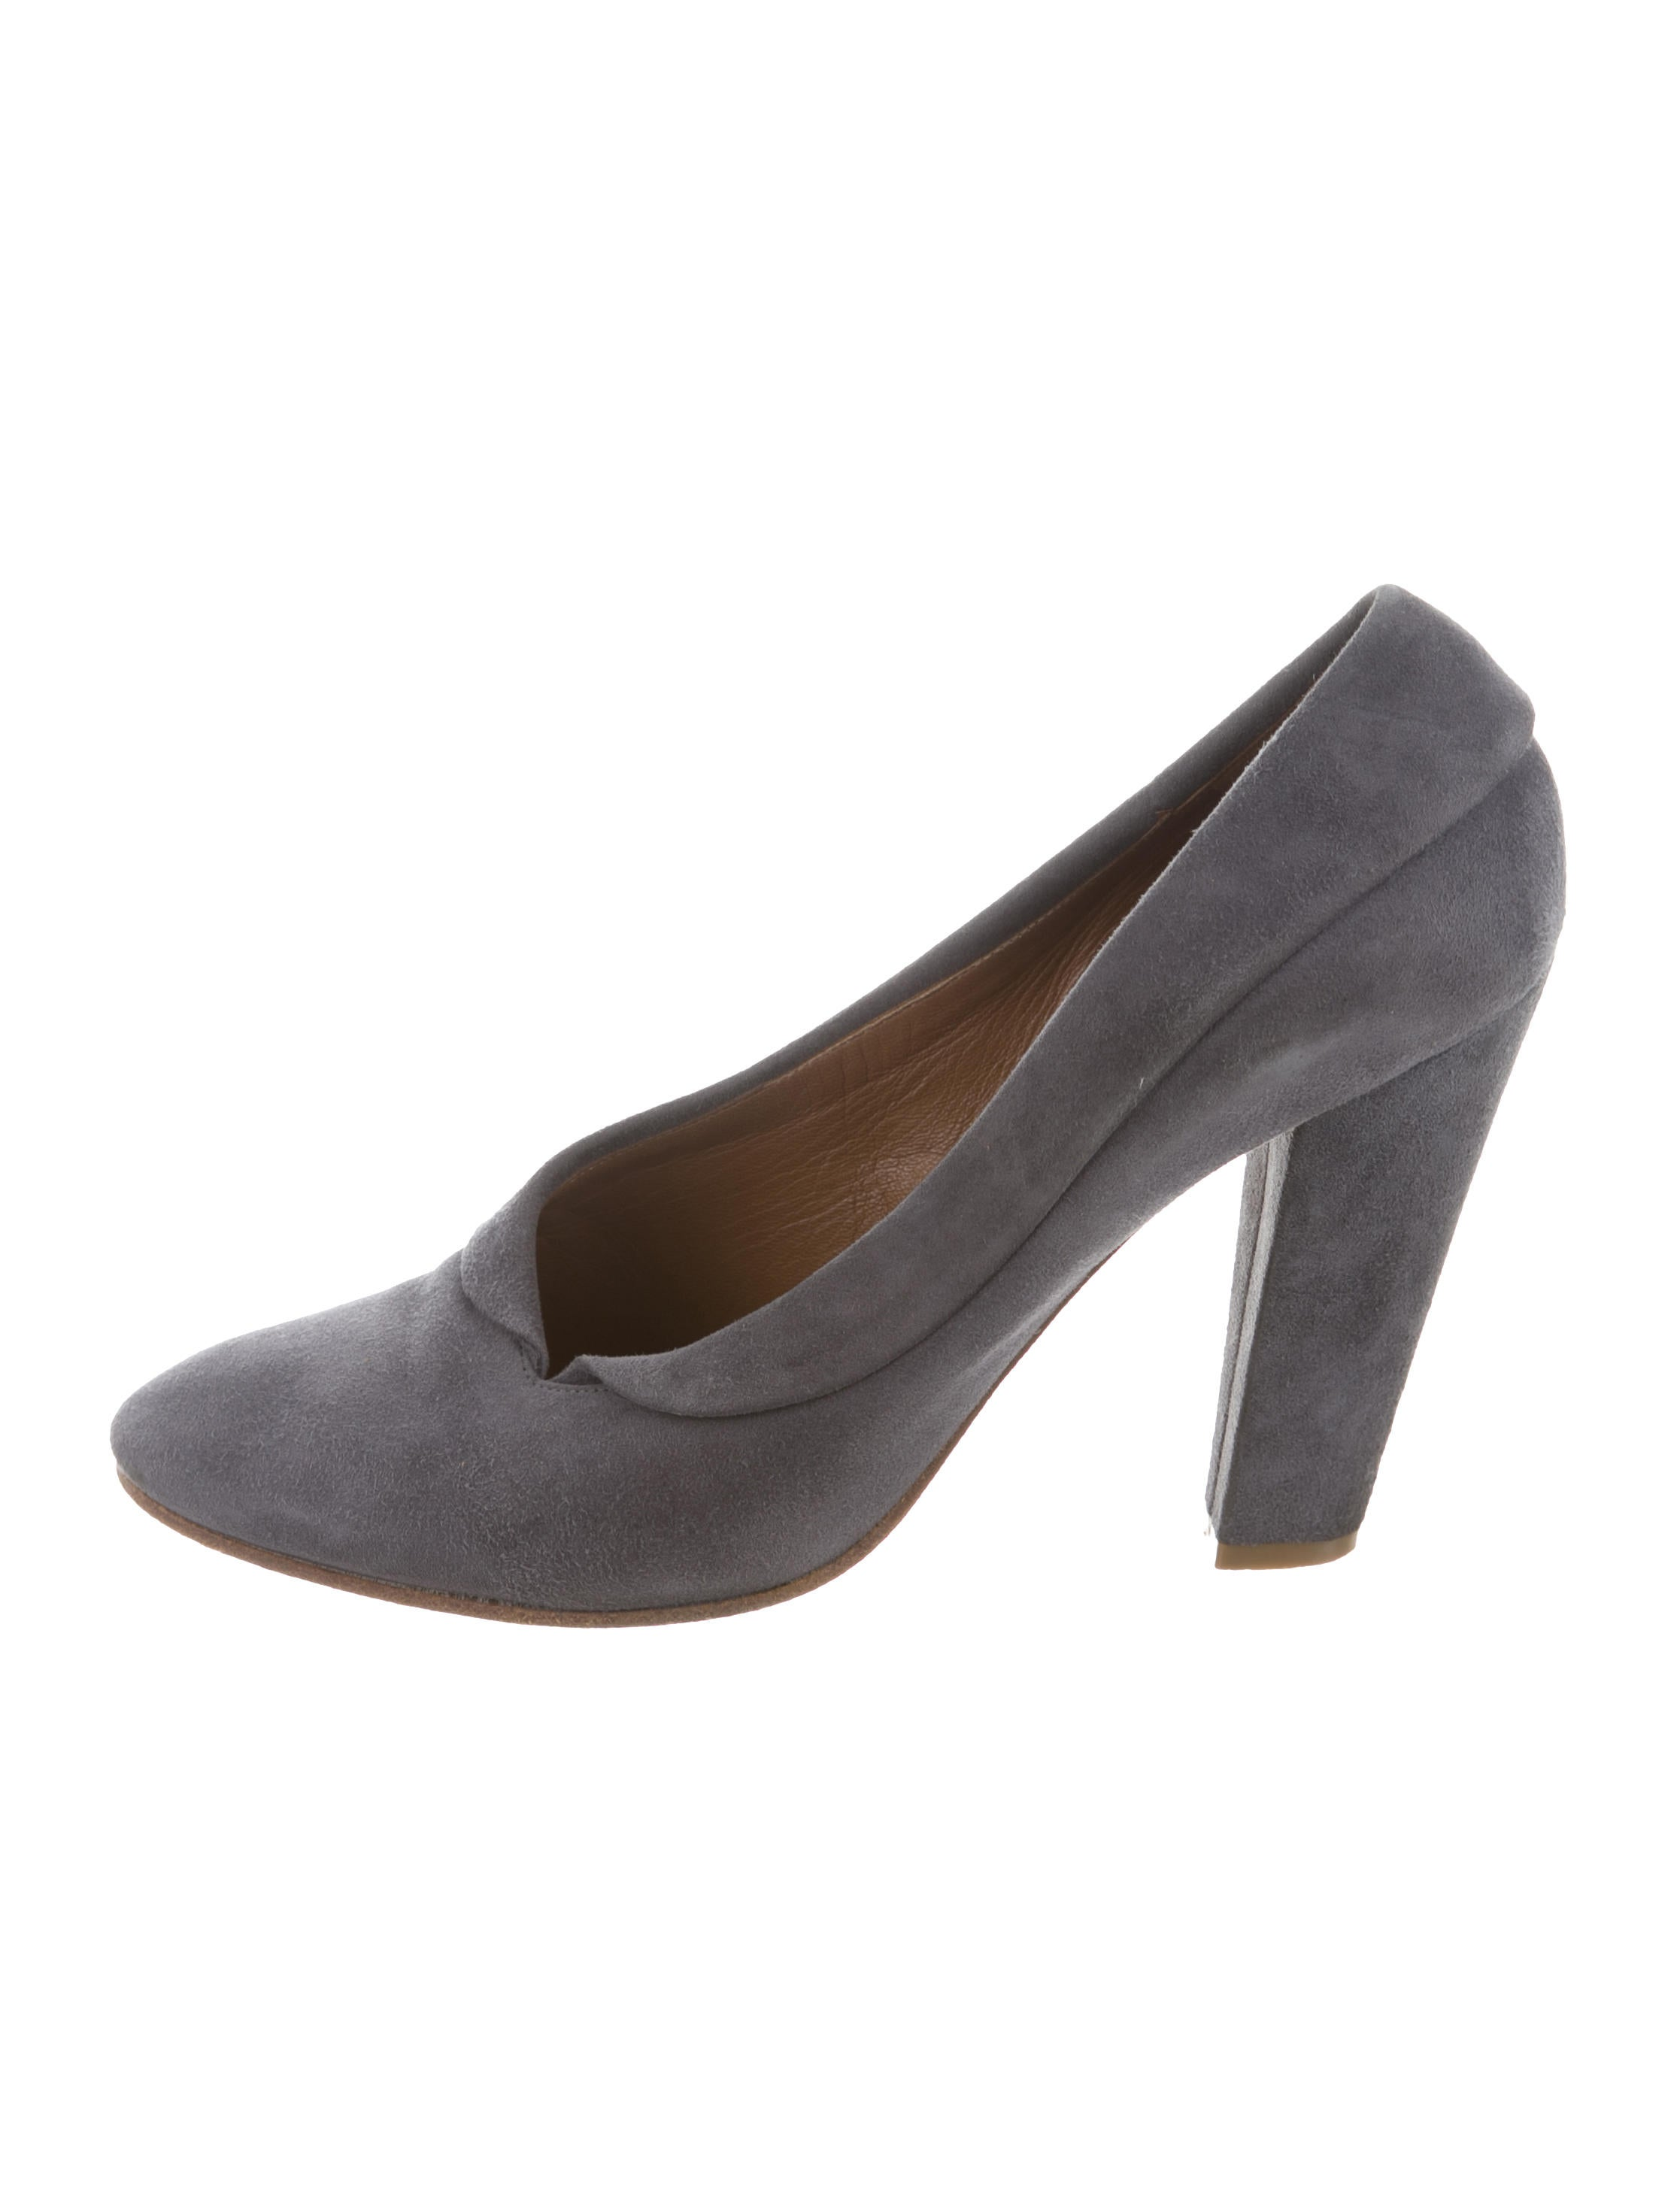 fast delivery sale online Chloé Suede Round-Toe Pumps wiki discount original cheap Manchester 8HFLv